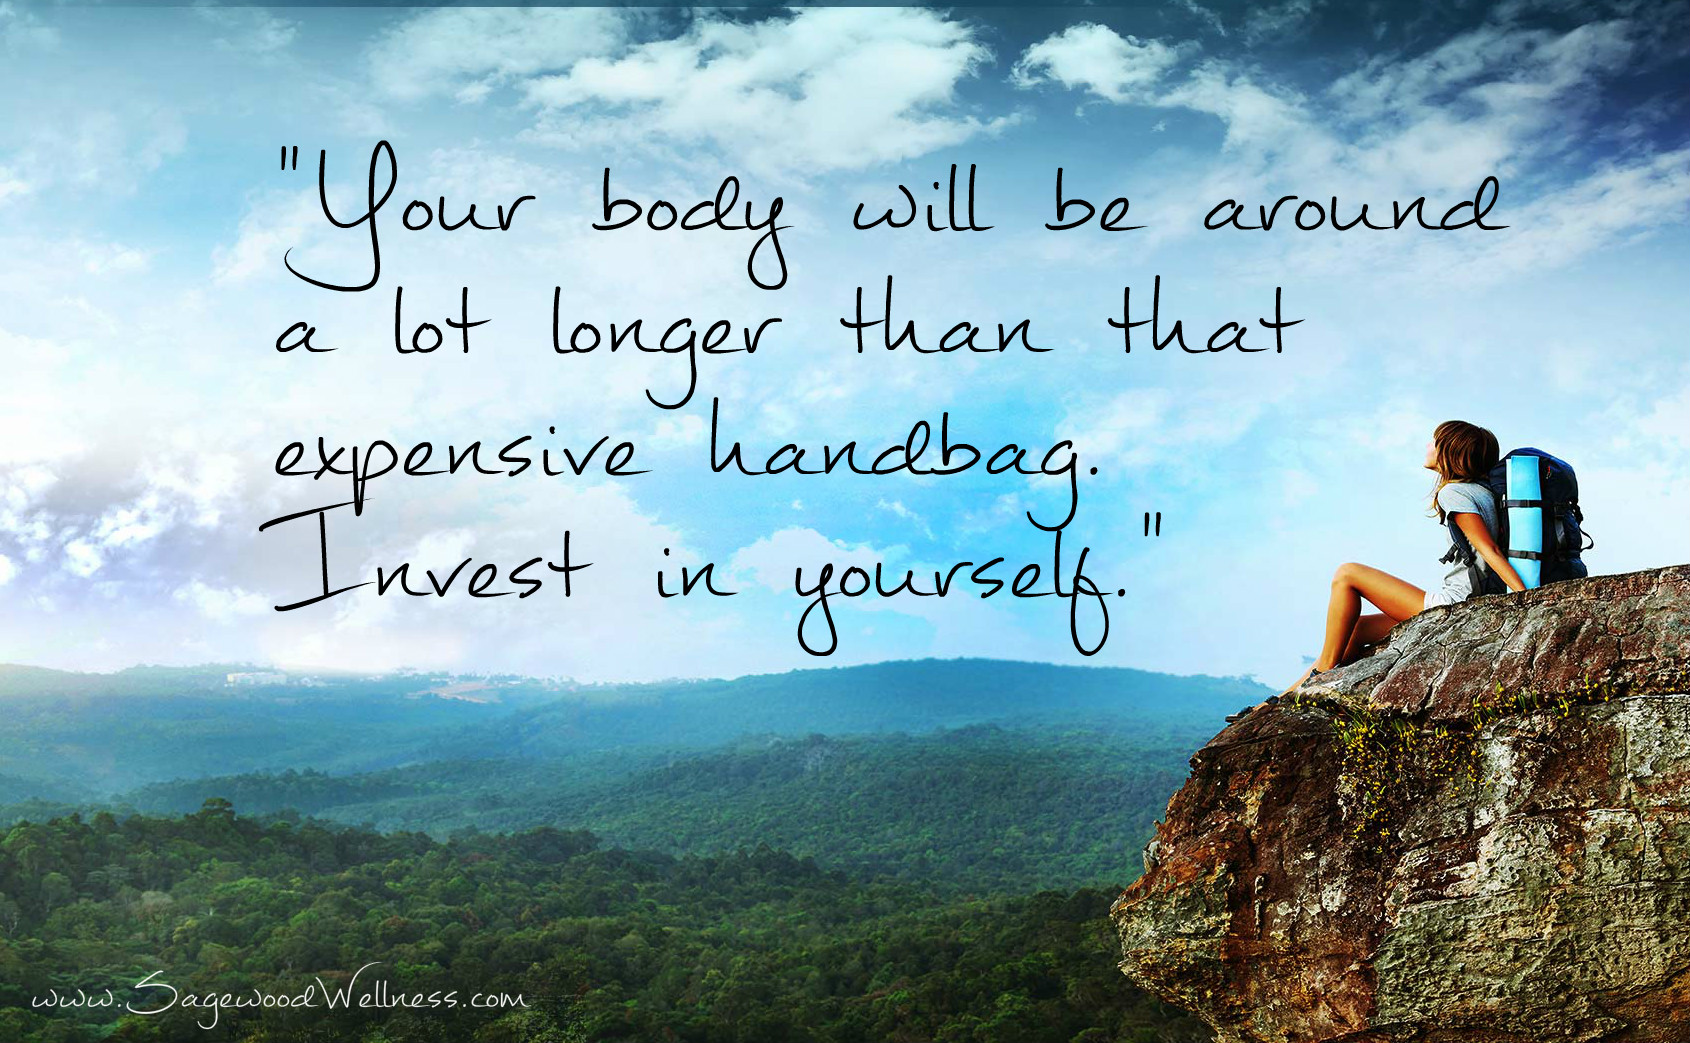 Healing Quotes - Day 17 of our 25 Ways to Wellness Holiday